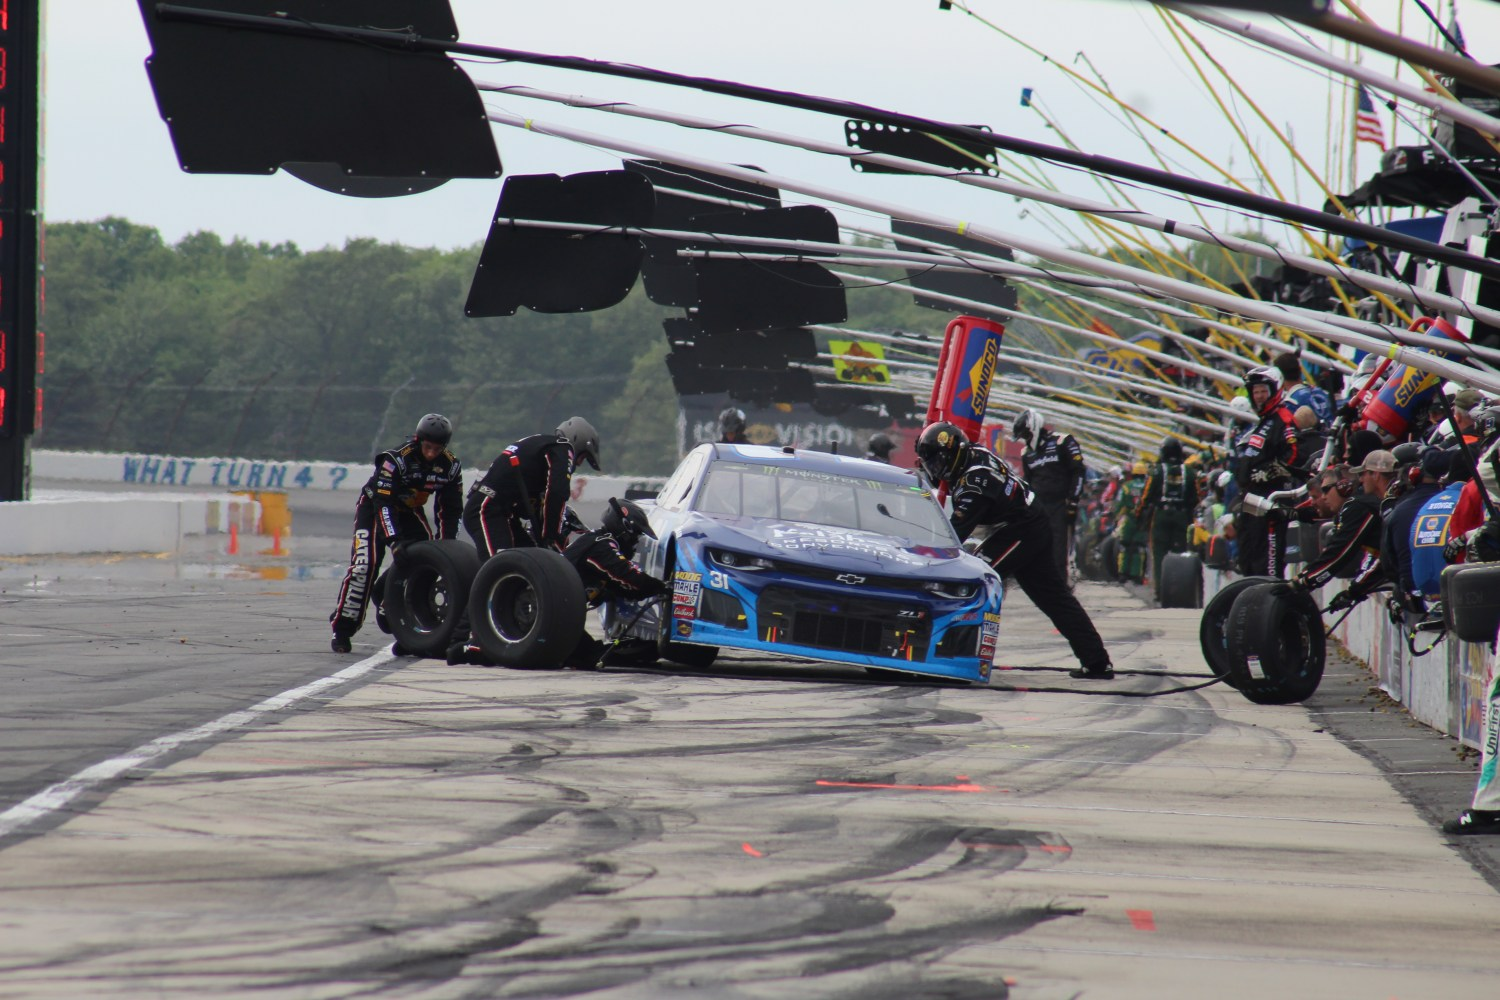 Ryan Newman's car receives service during the 2018 Pocono 400. (Tyler Head | The Racing Experts)